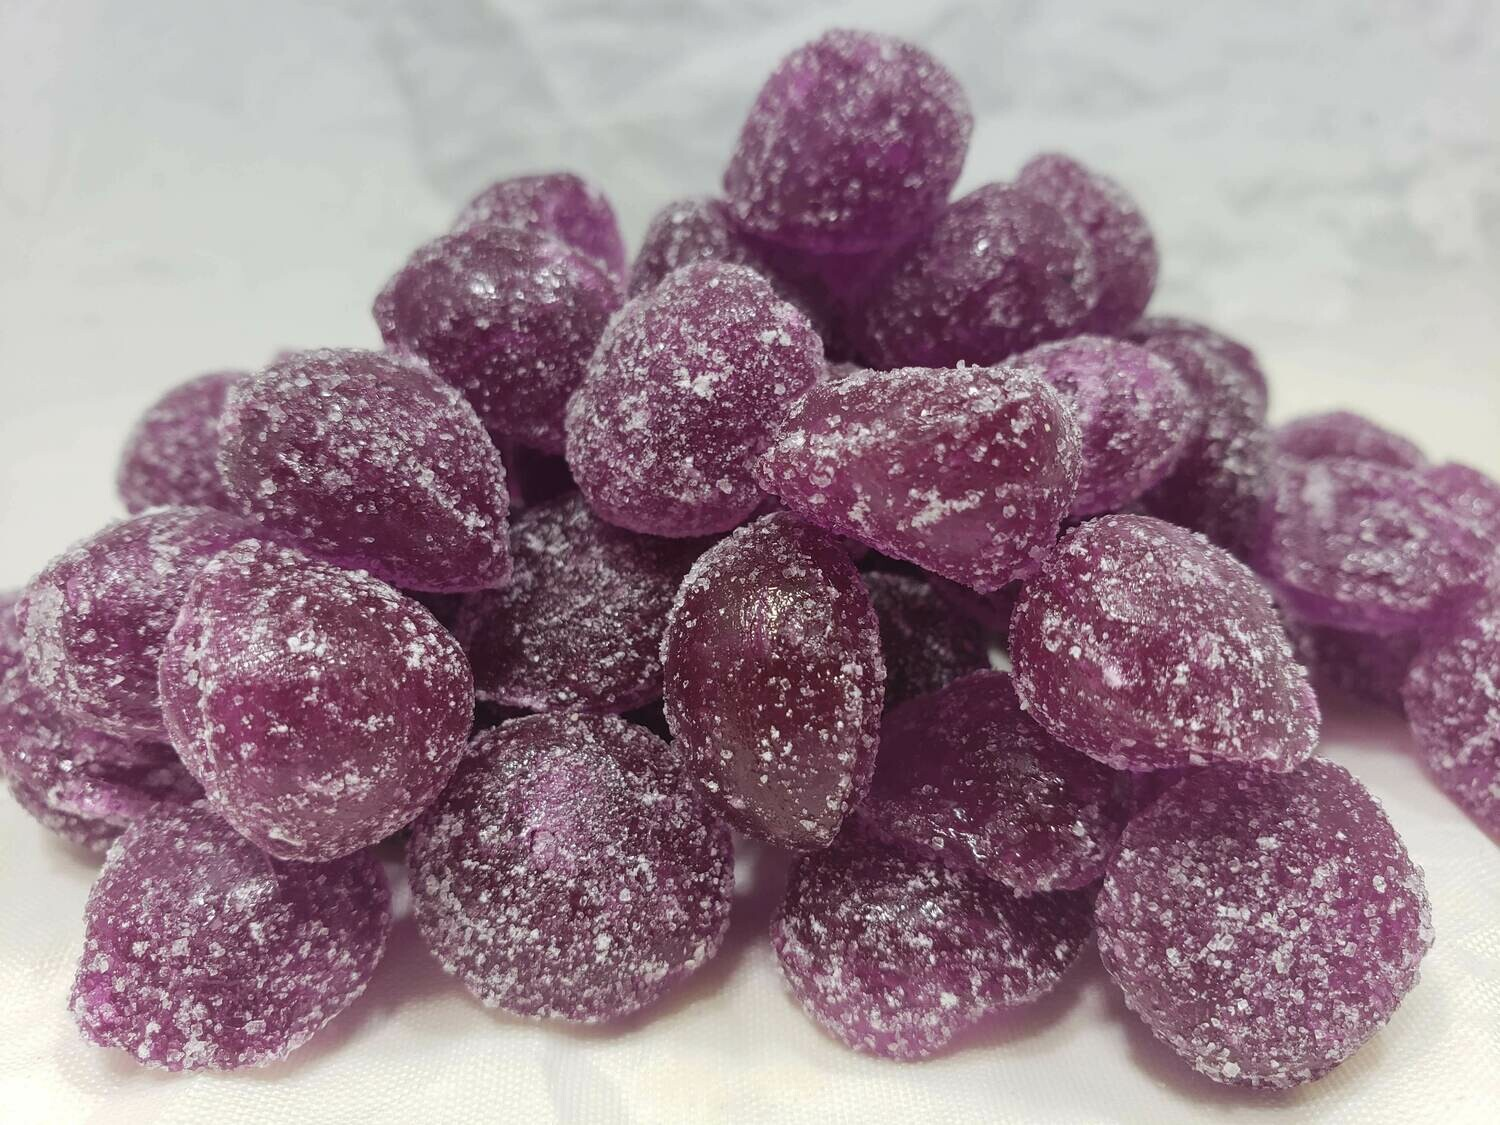 Huckleberry Hard Candy Drops 3 PACK with FREE SHIPPING